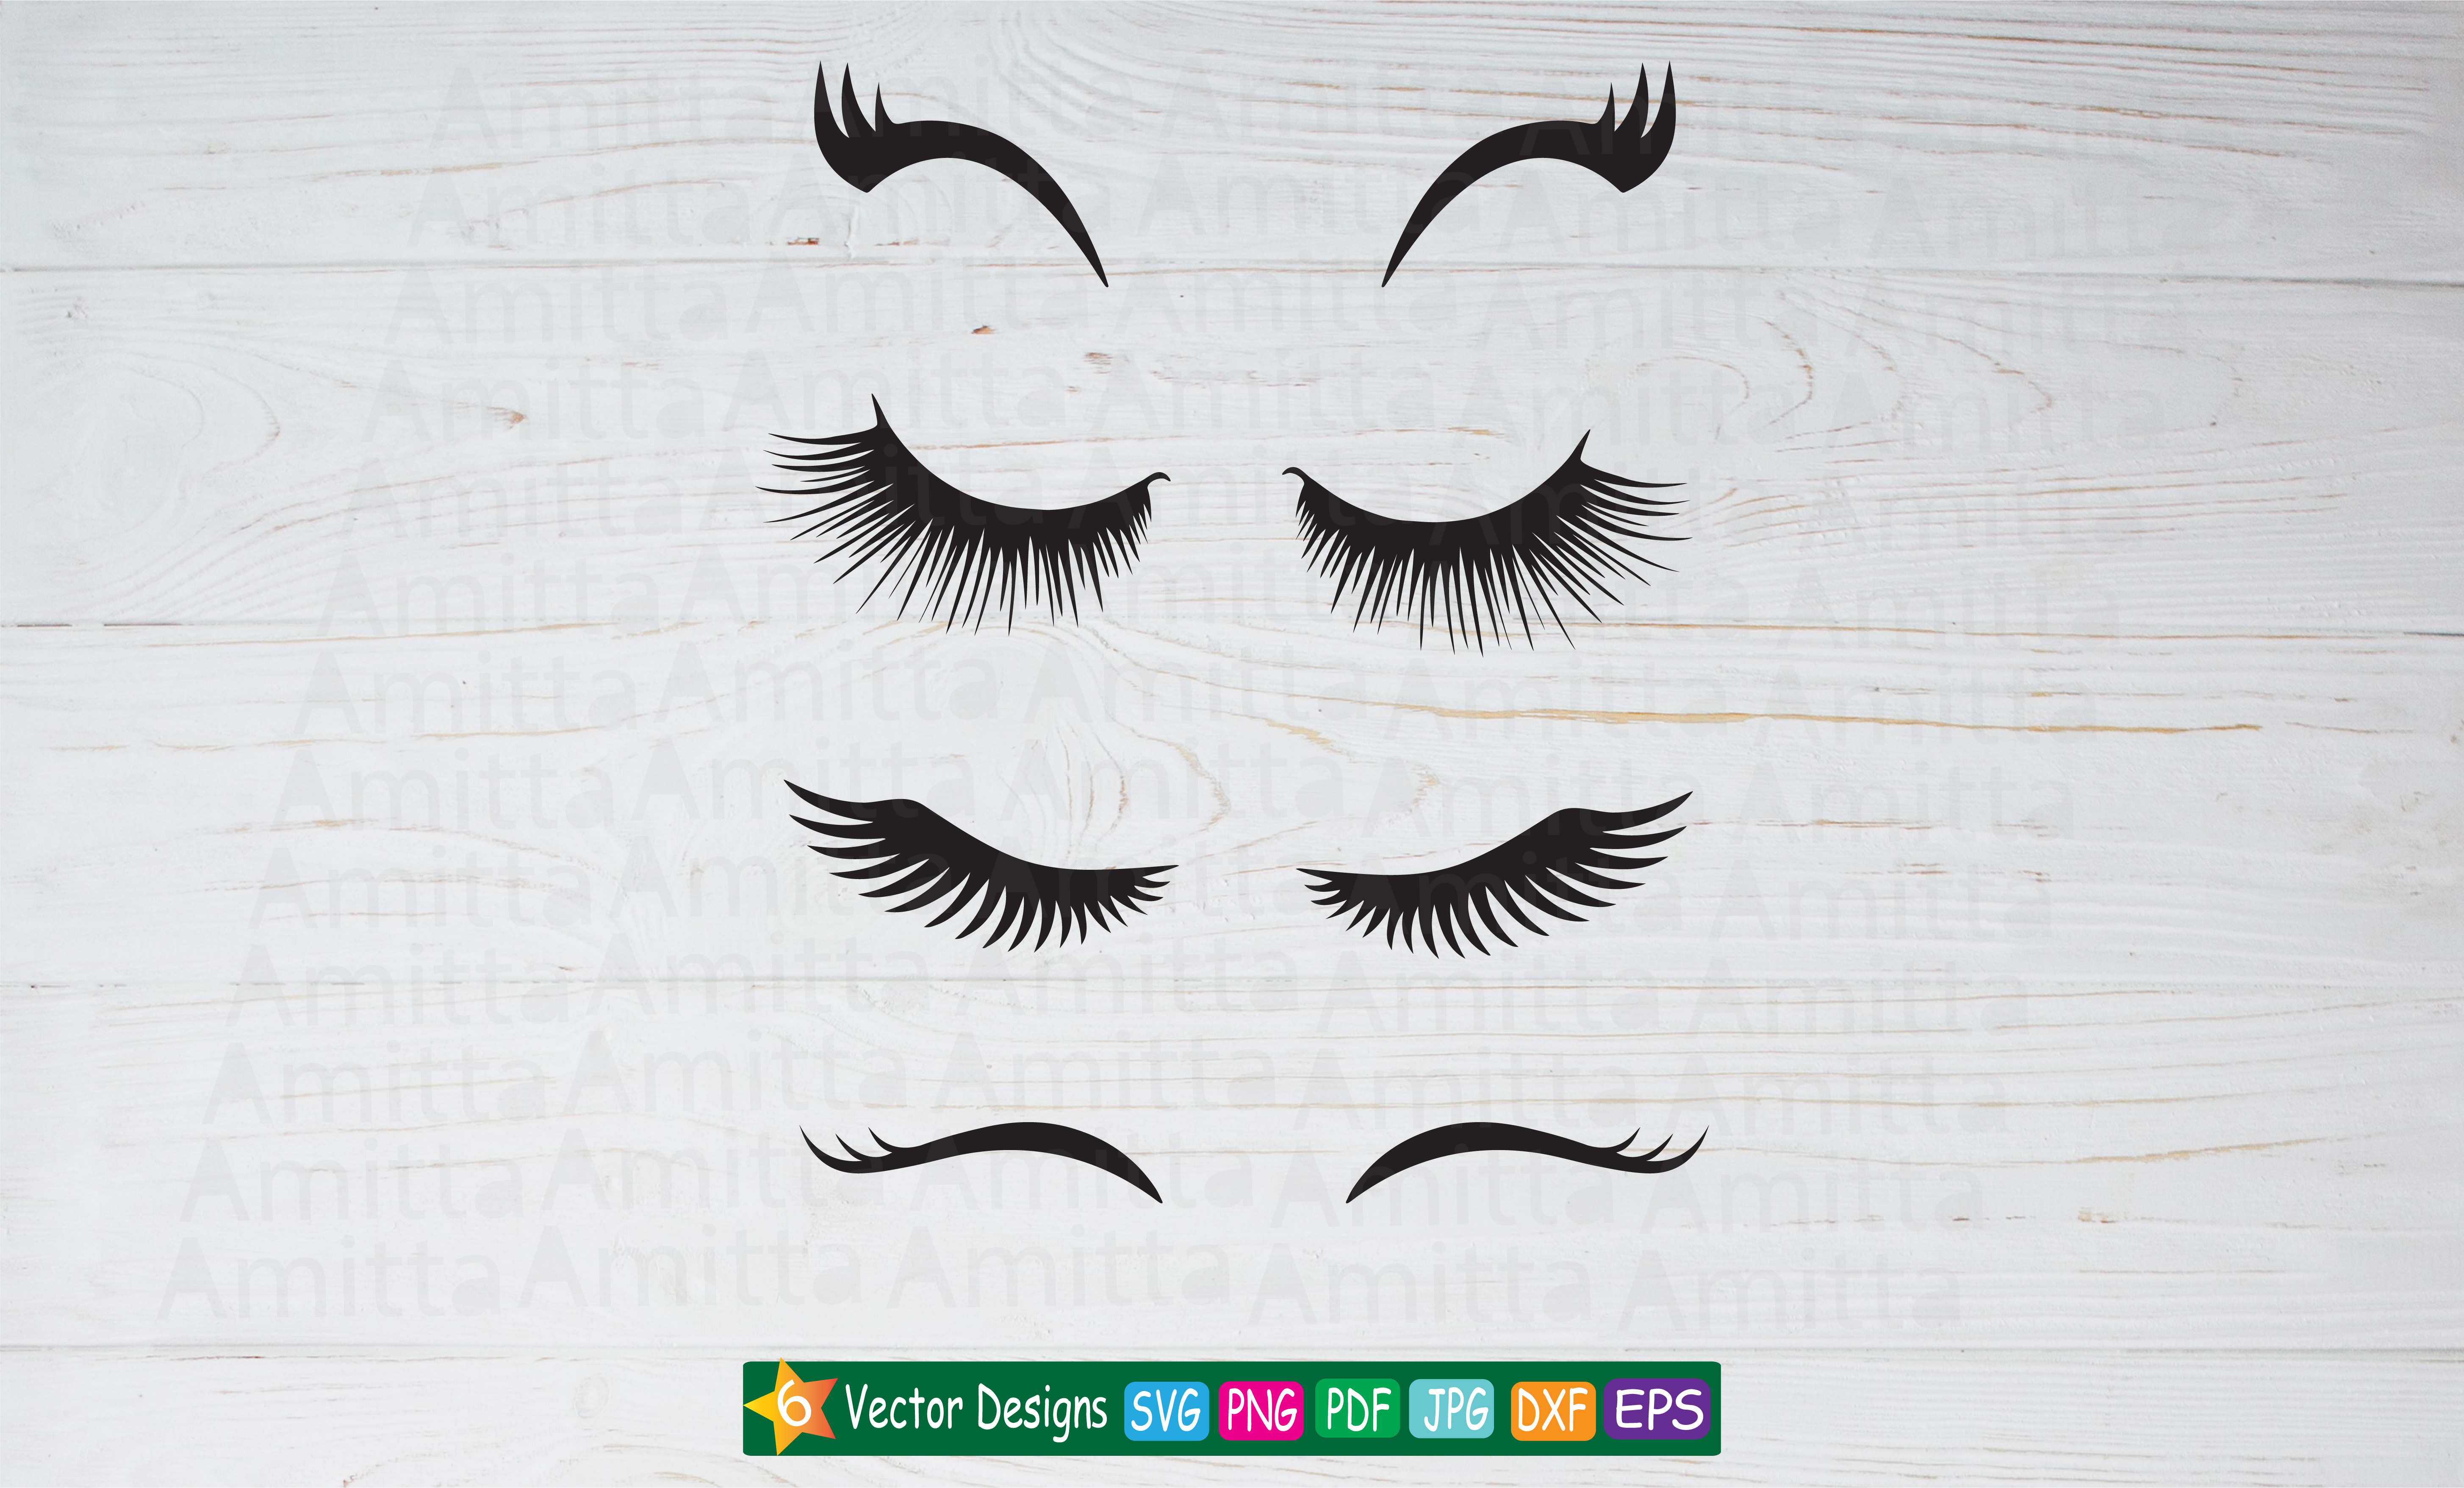 Download Free Eyelashes Graphic By Amitta Creative Fabrica for Cricut Explore, Silhouette and other cutting machines.